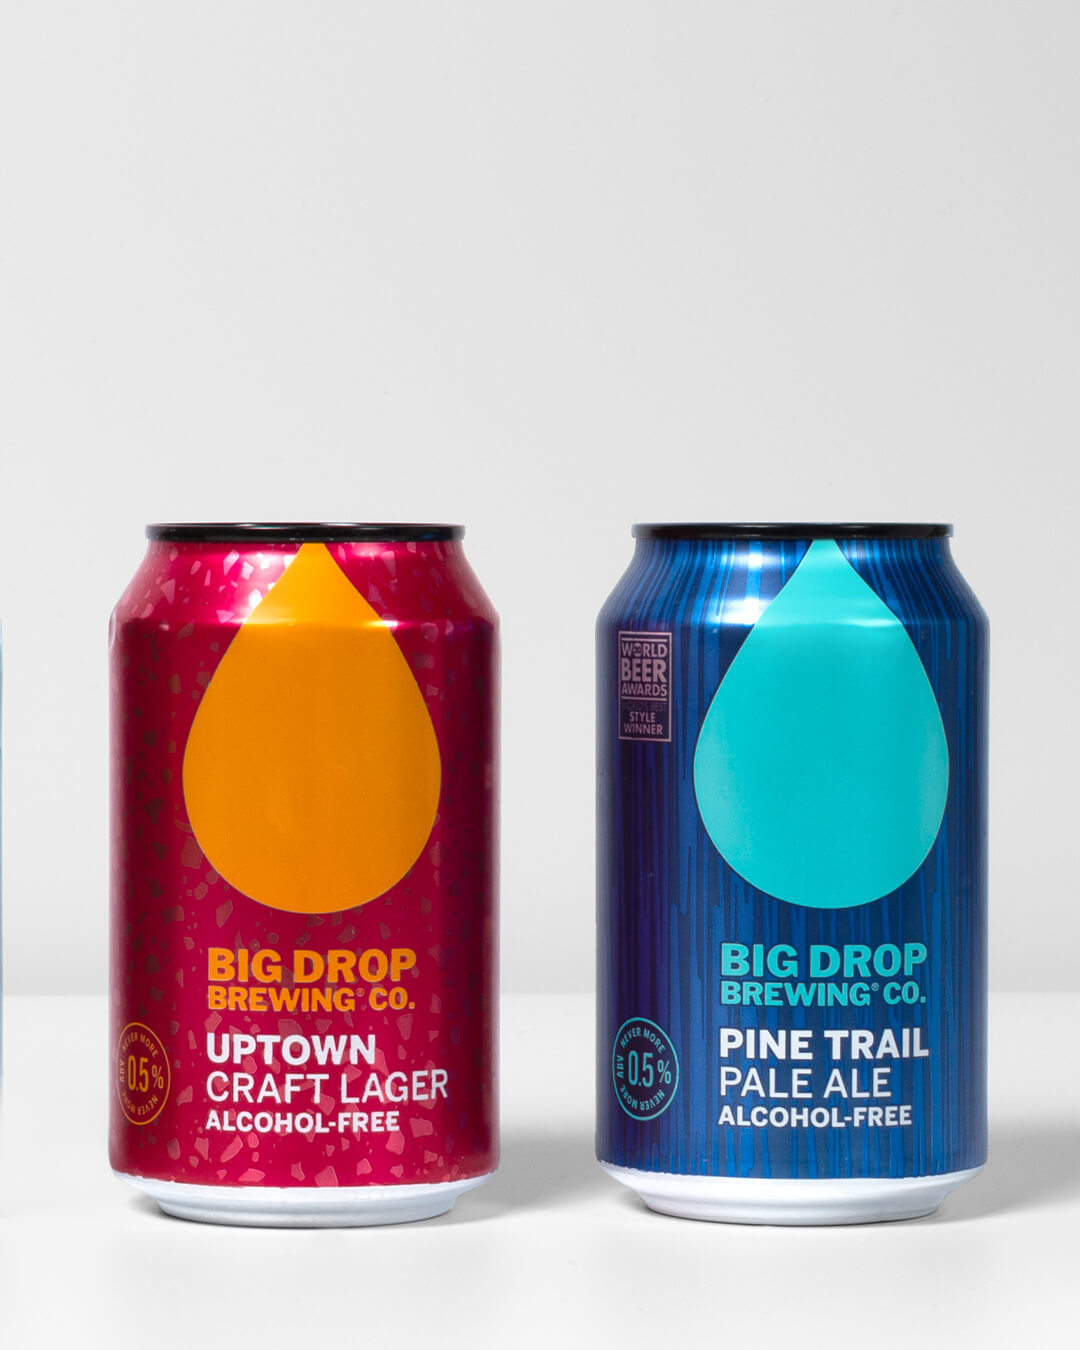 Big Drop Brewing Co alcohol free craft beer cans